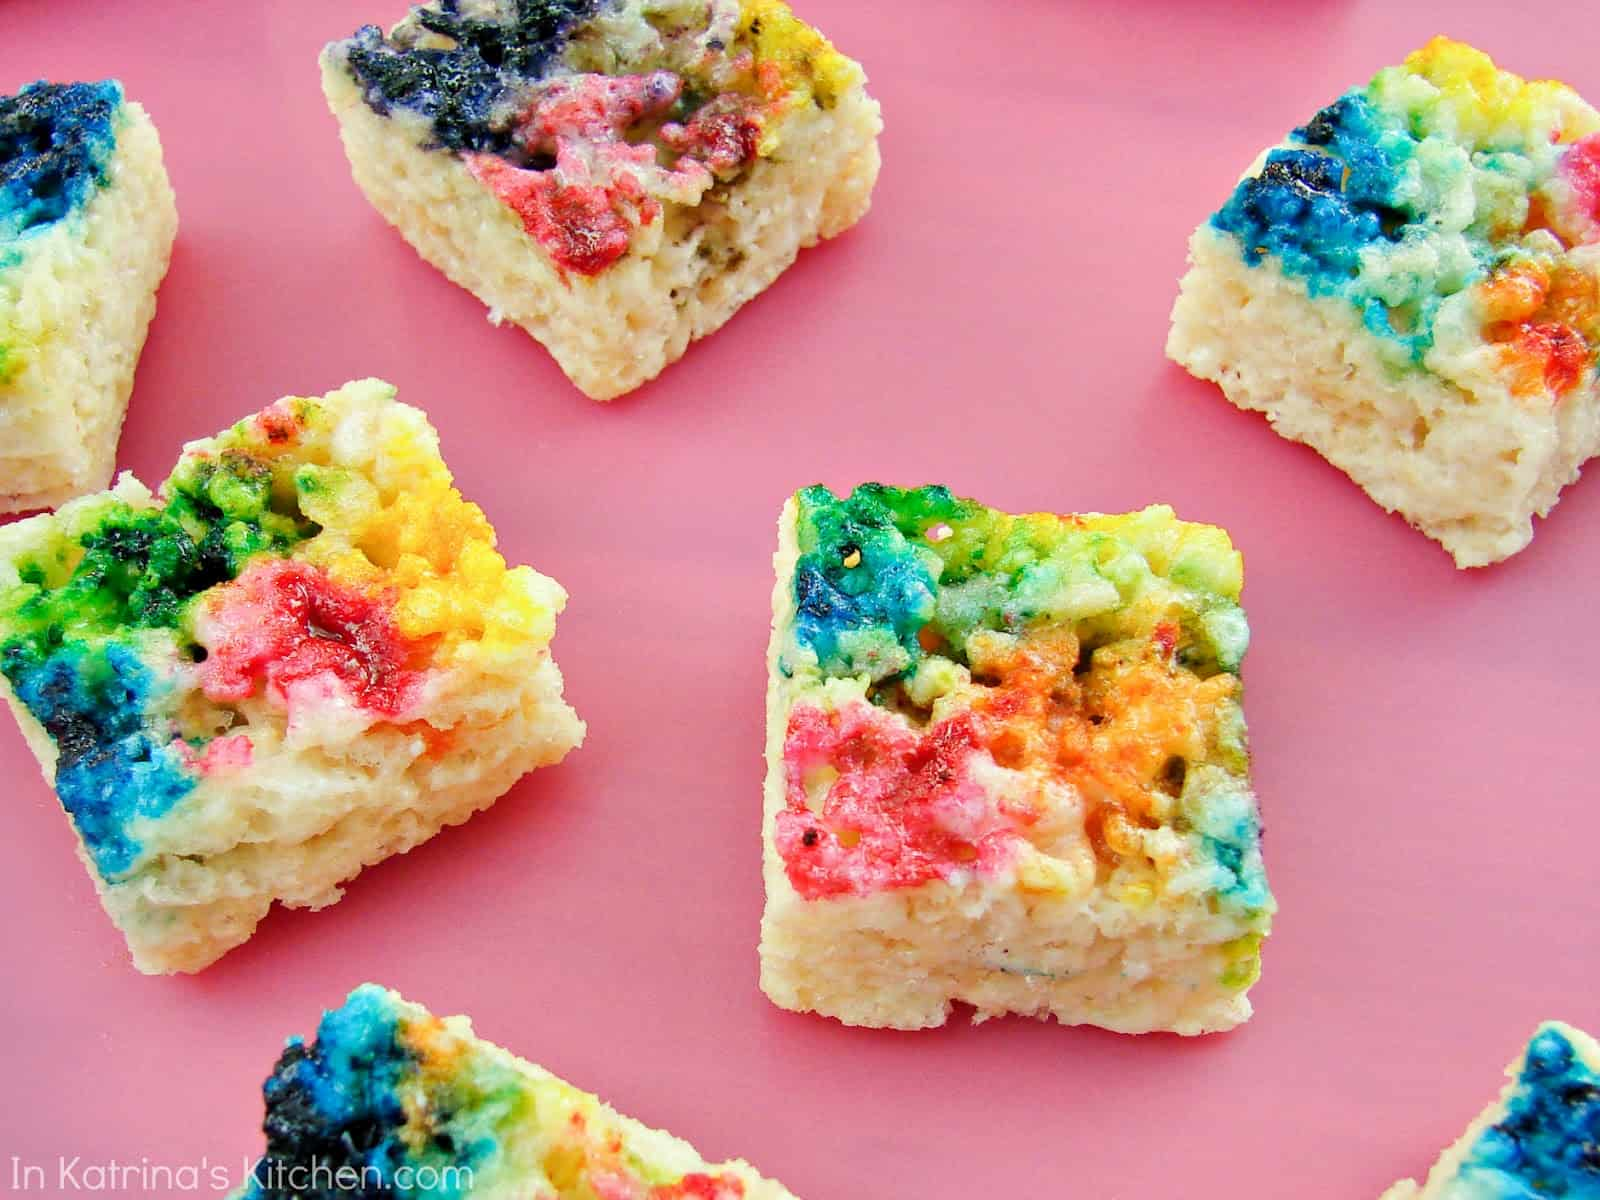 Tie Dye Krispie Treats In Katrinas Kitchen 013wm